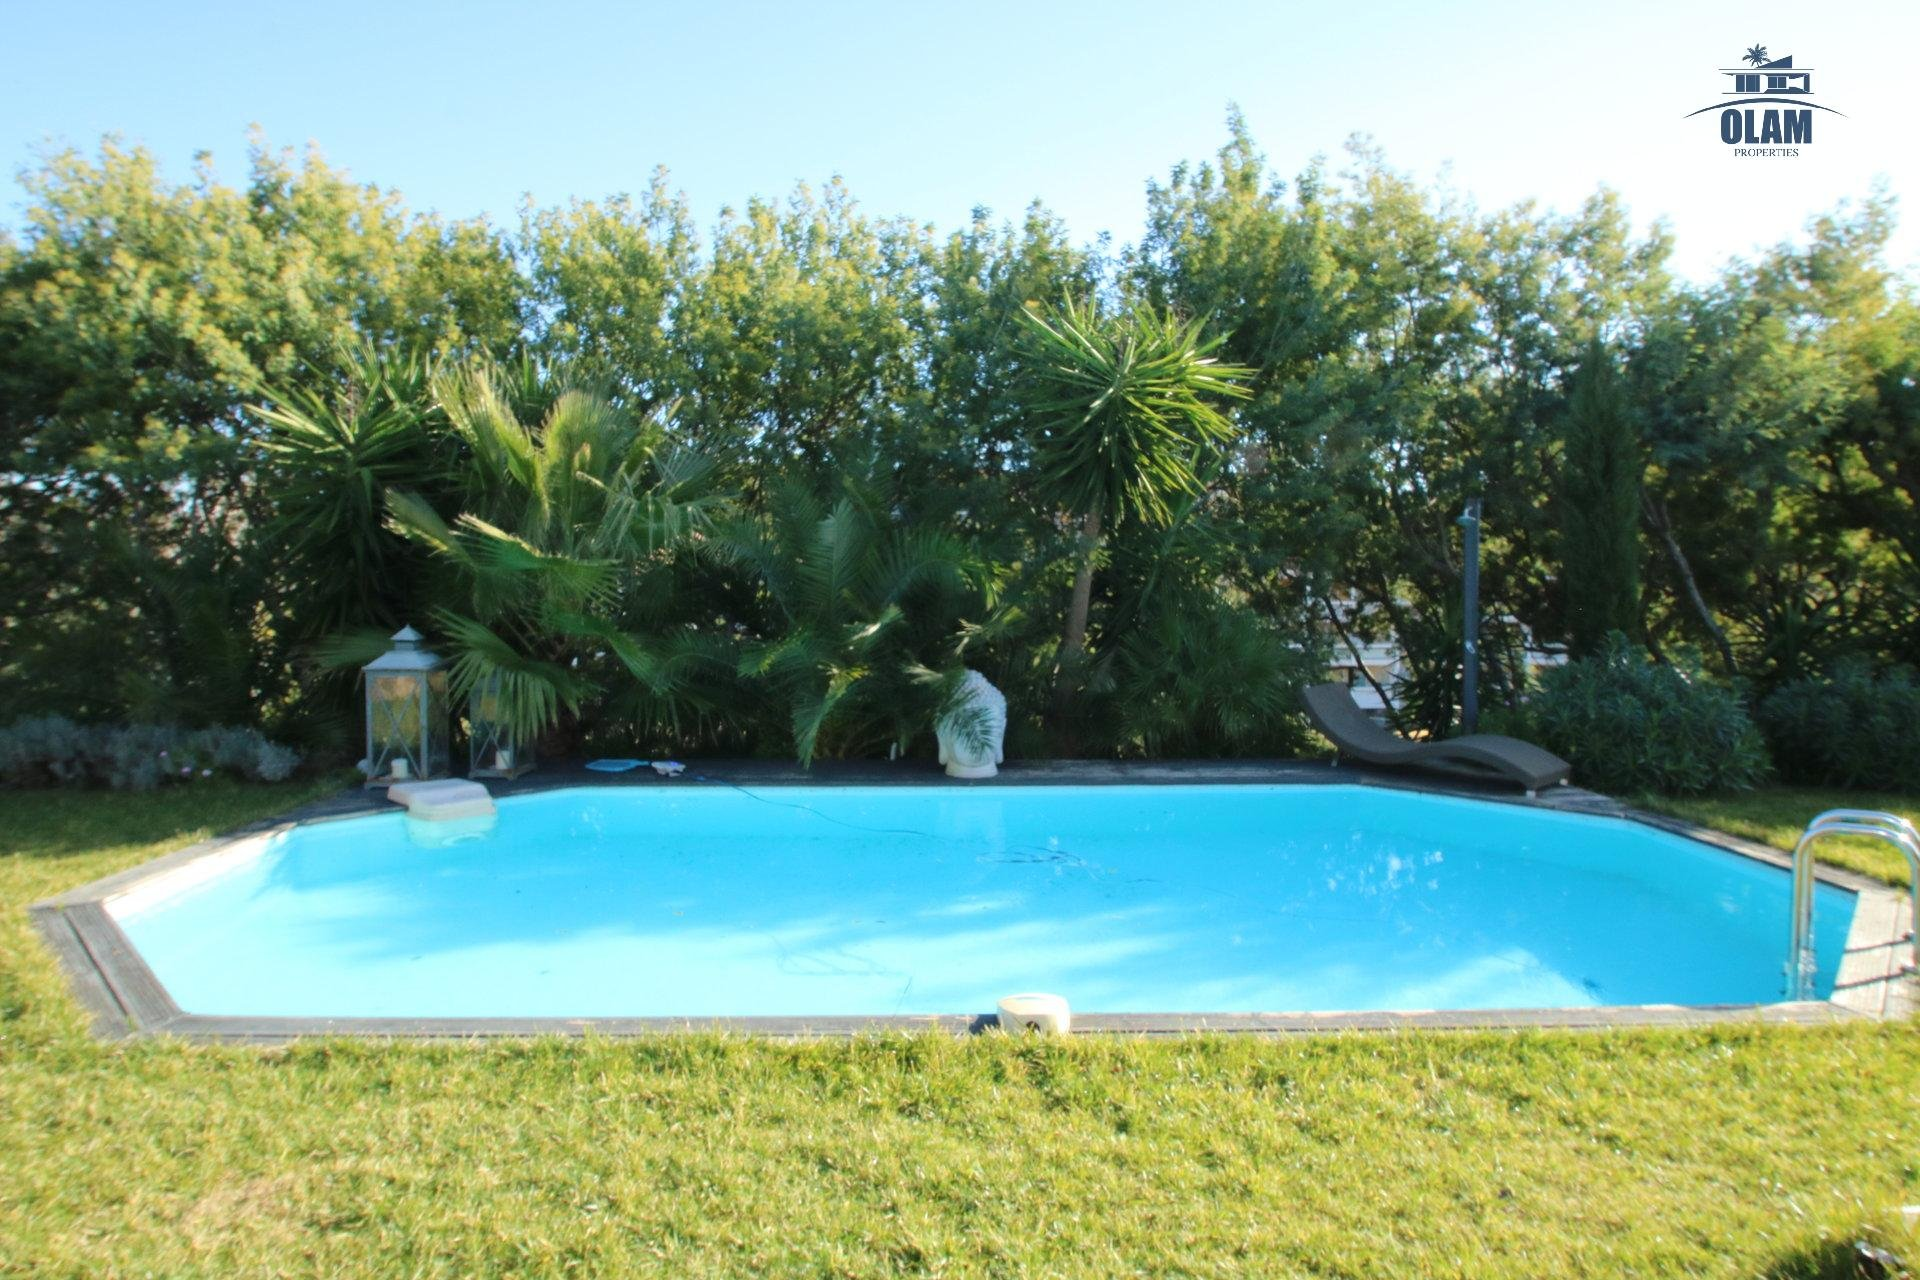 swimmingpool, villa, Cannes, 3 bedroom apartment